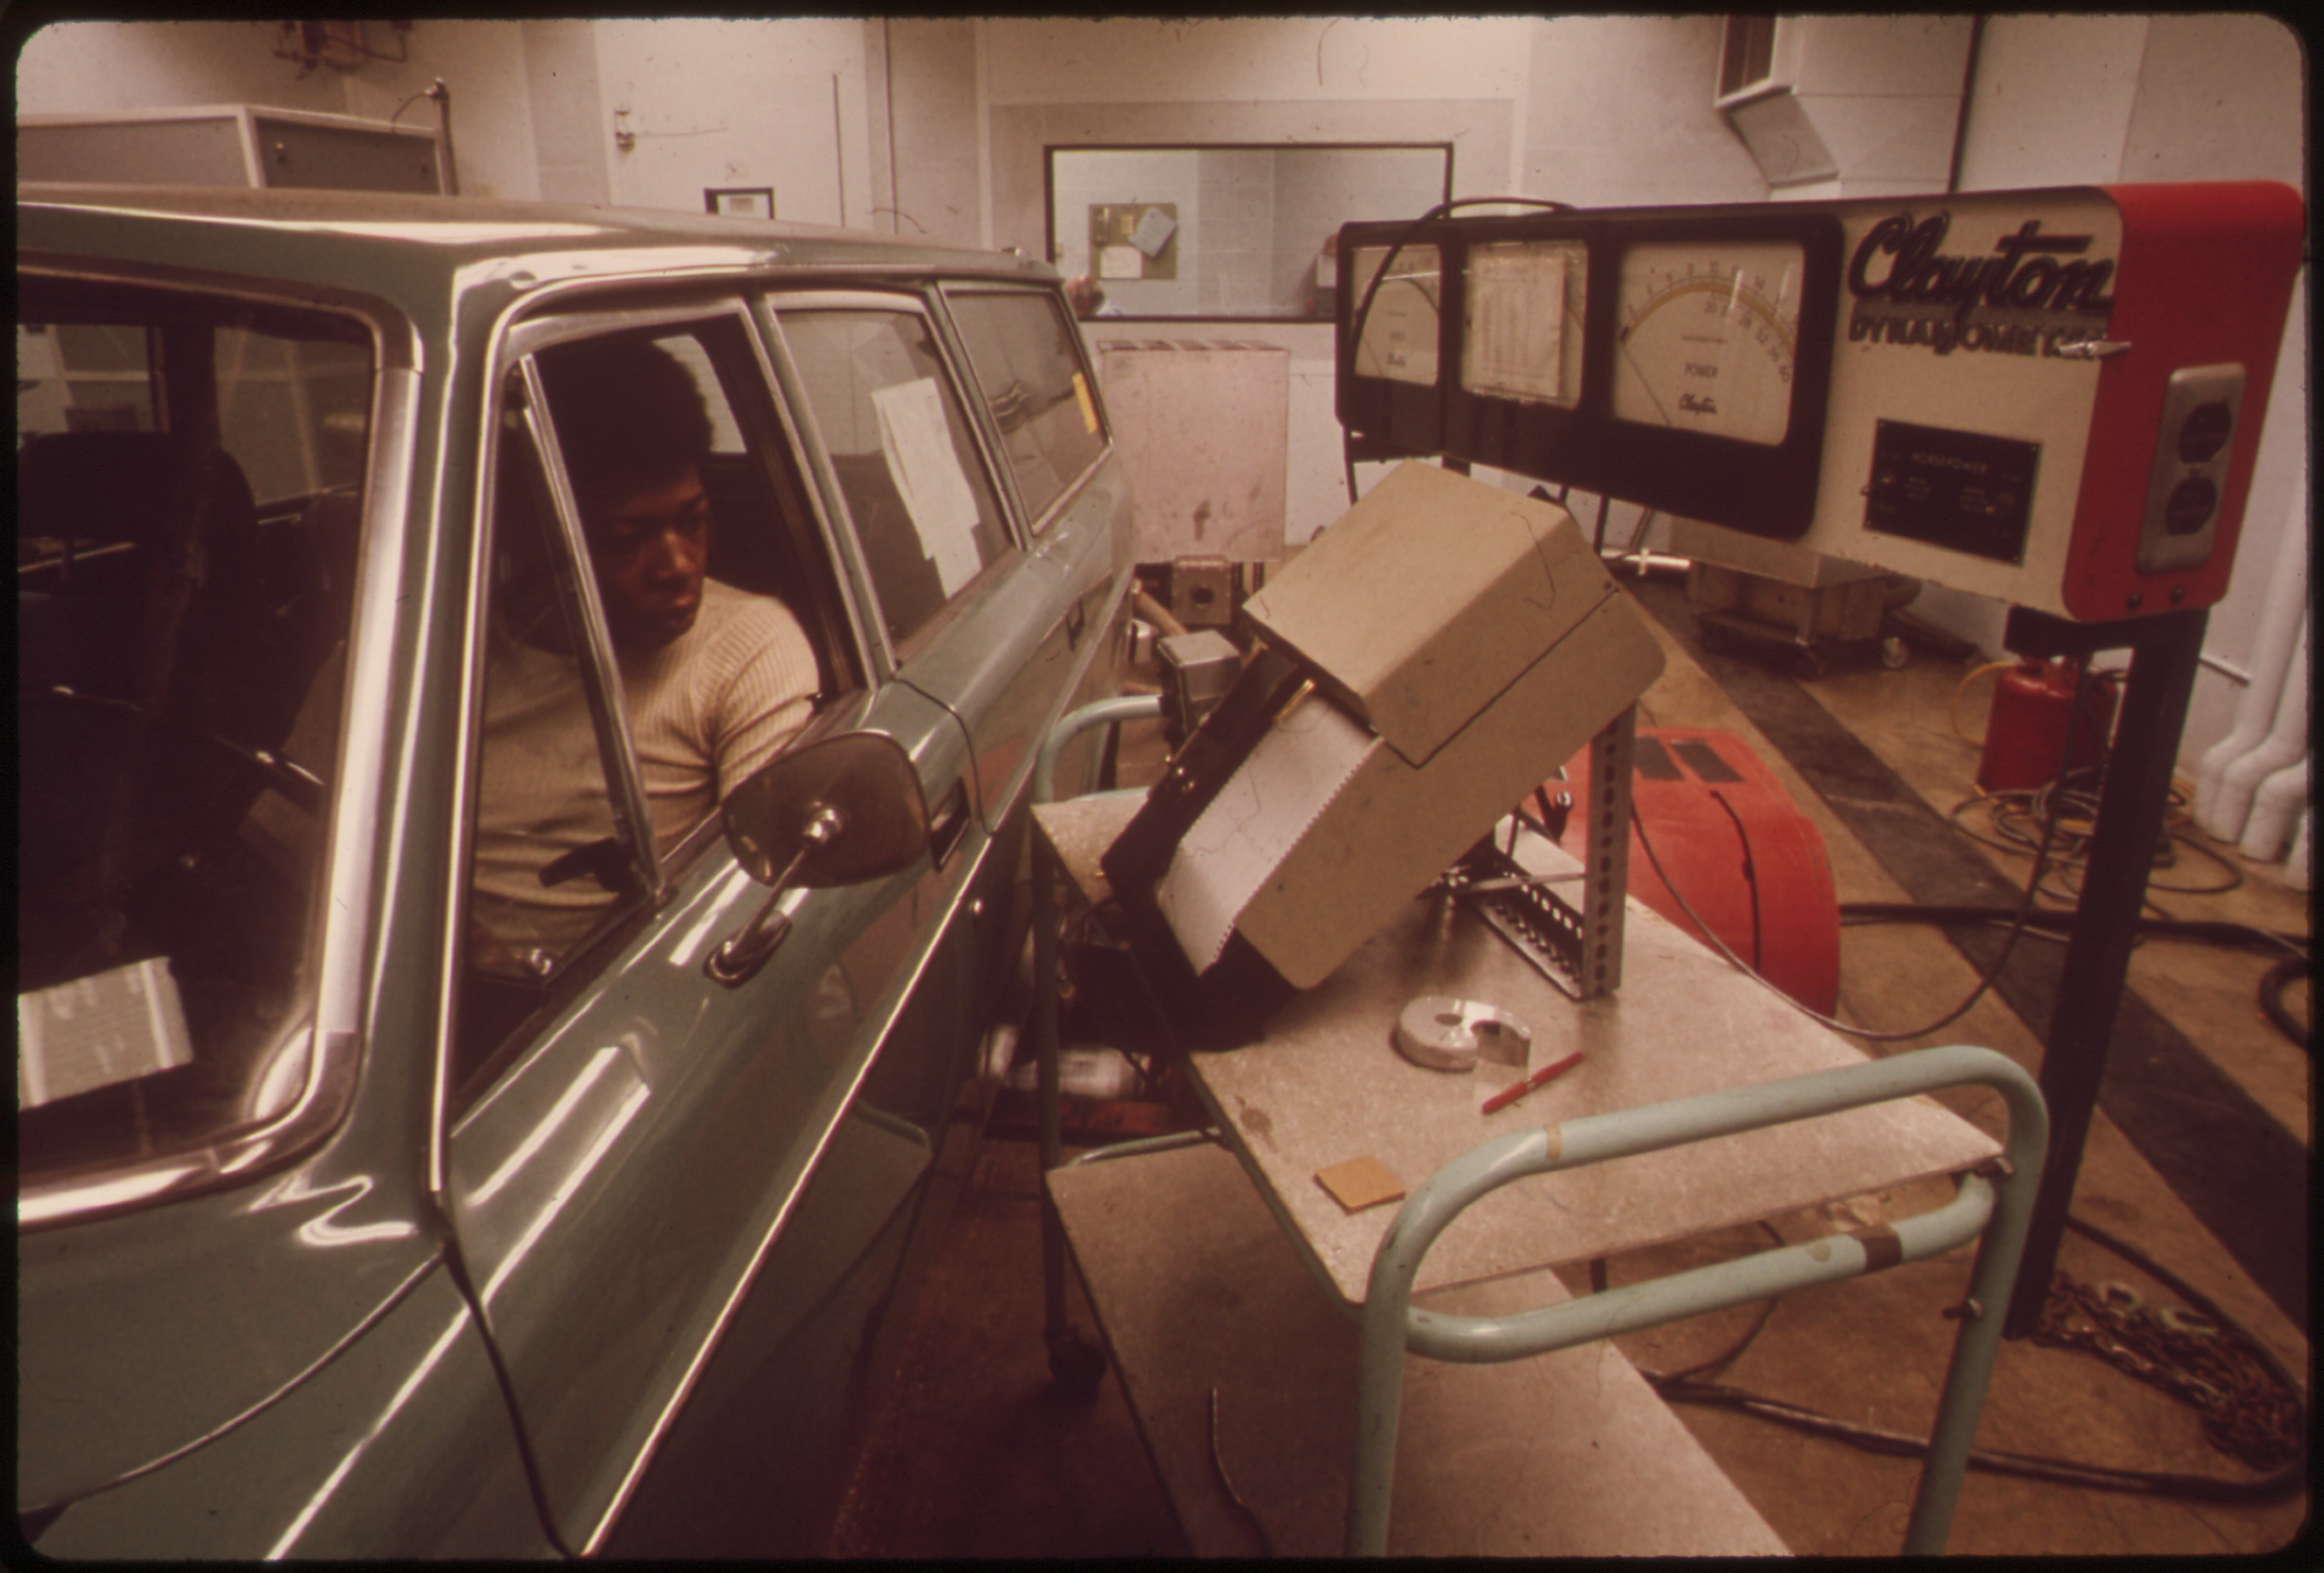 Epa pictures for Motor vehicle emissions test